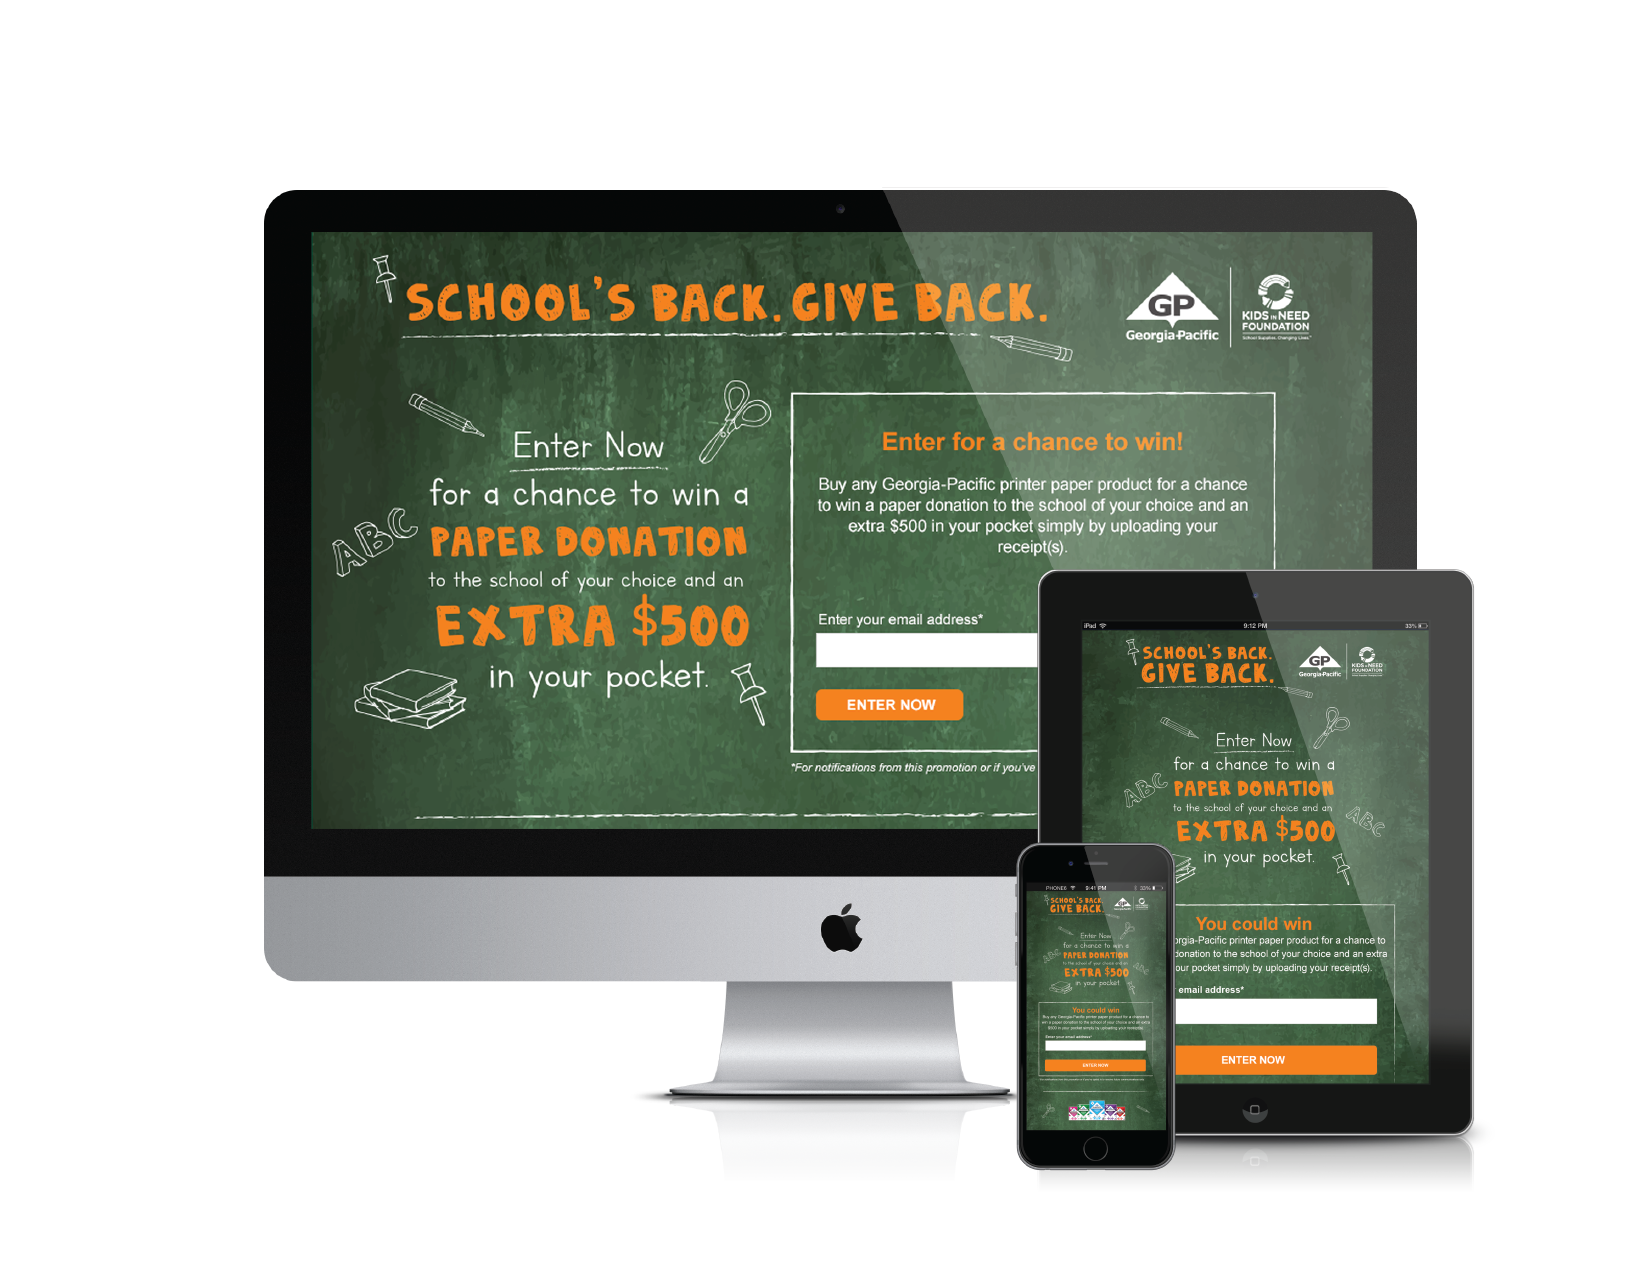 gp-backtoschool-web-mockup-01.png